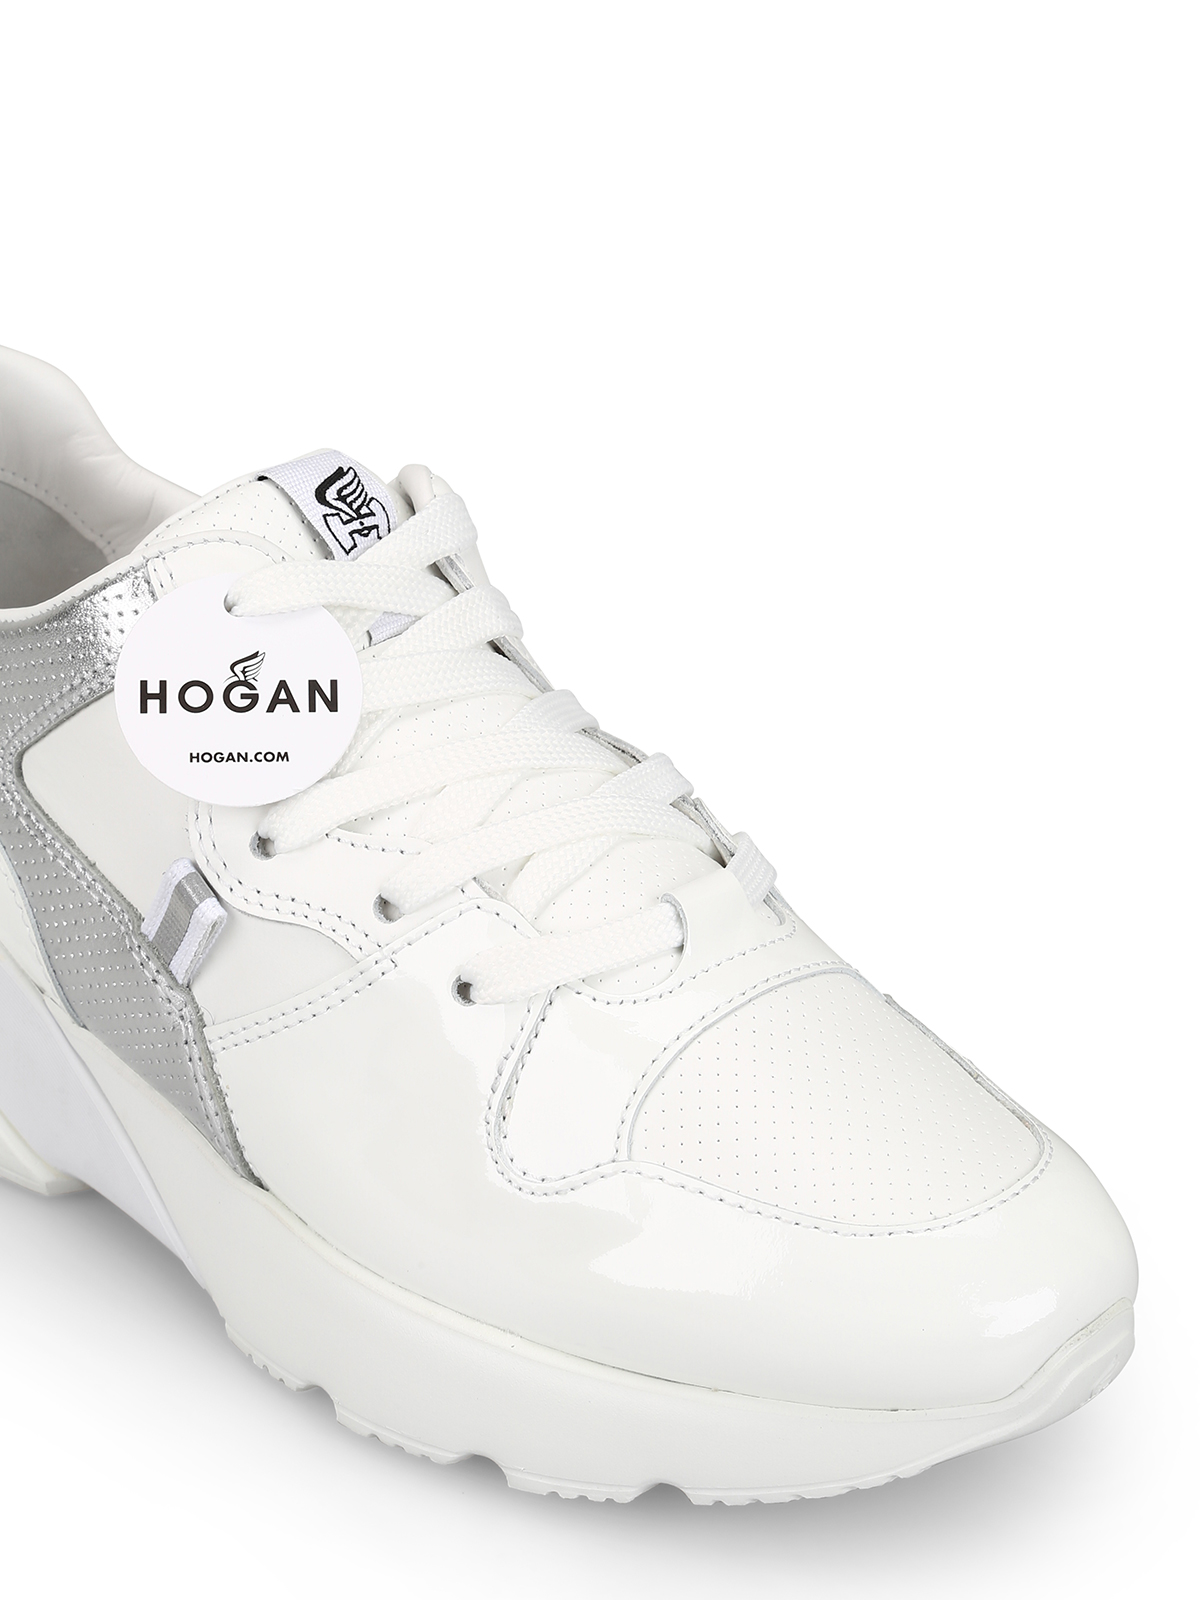 Trainers Hogan - Active One H385 sneakers - HXW3850BF40KI60351 ...